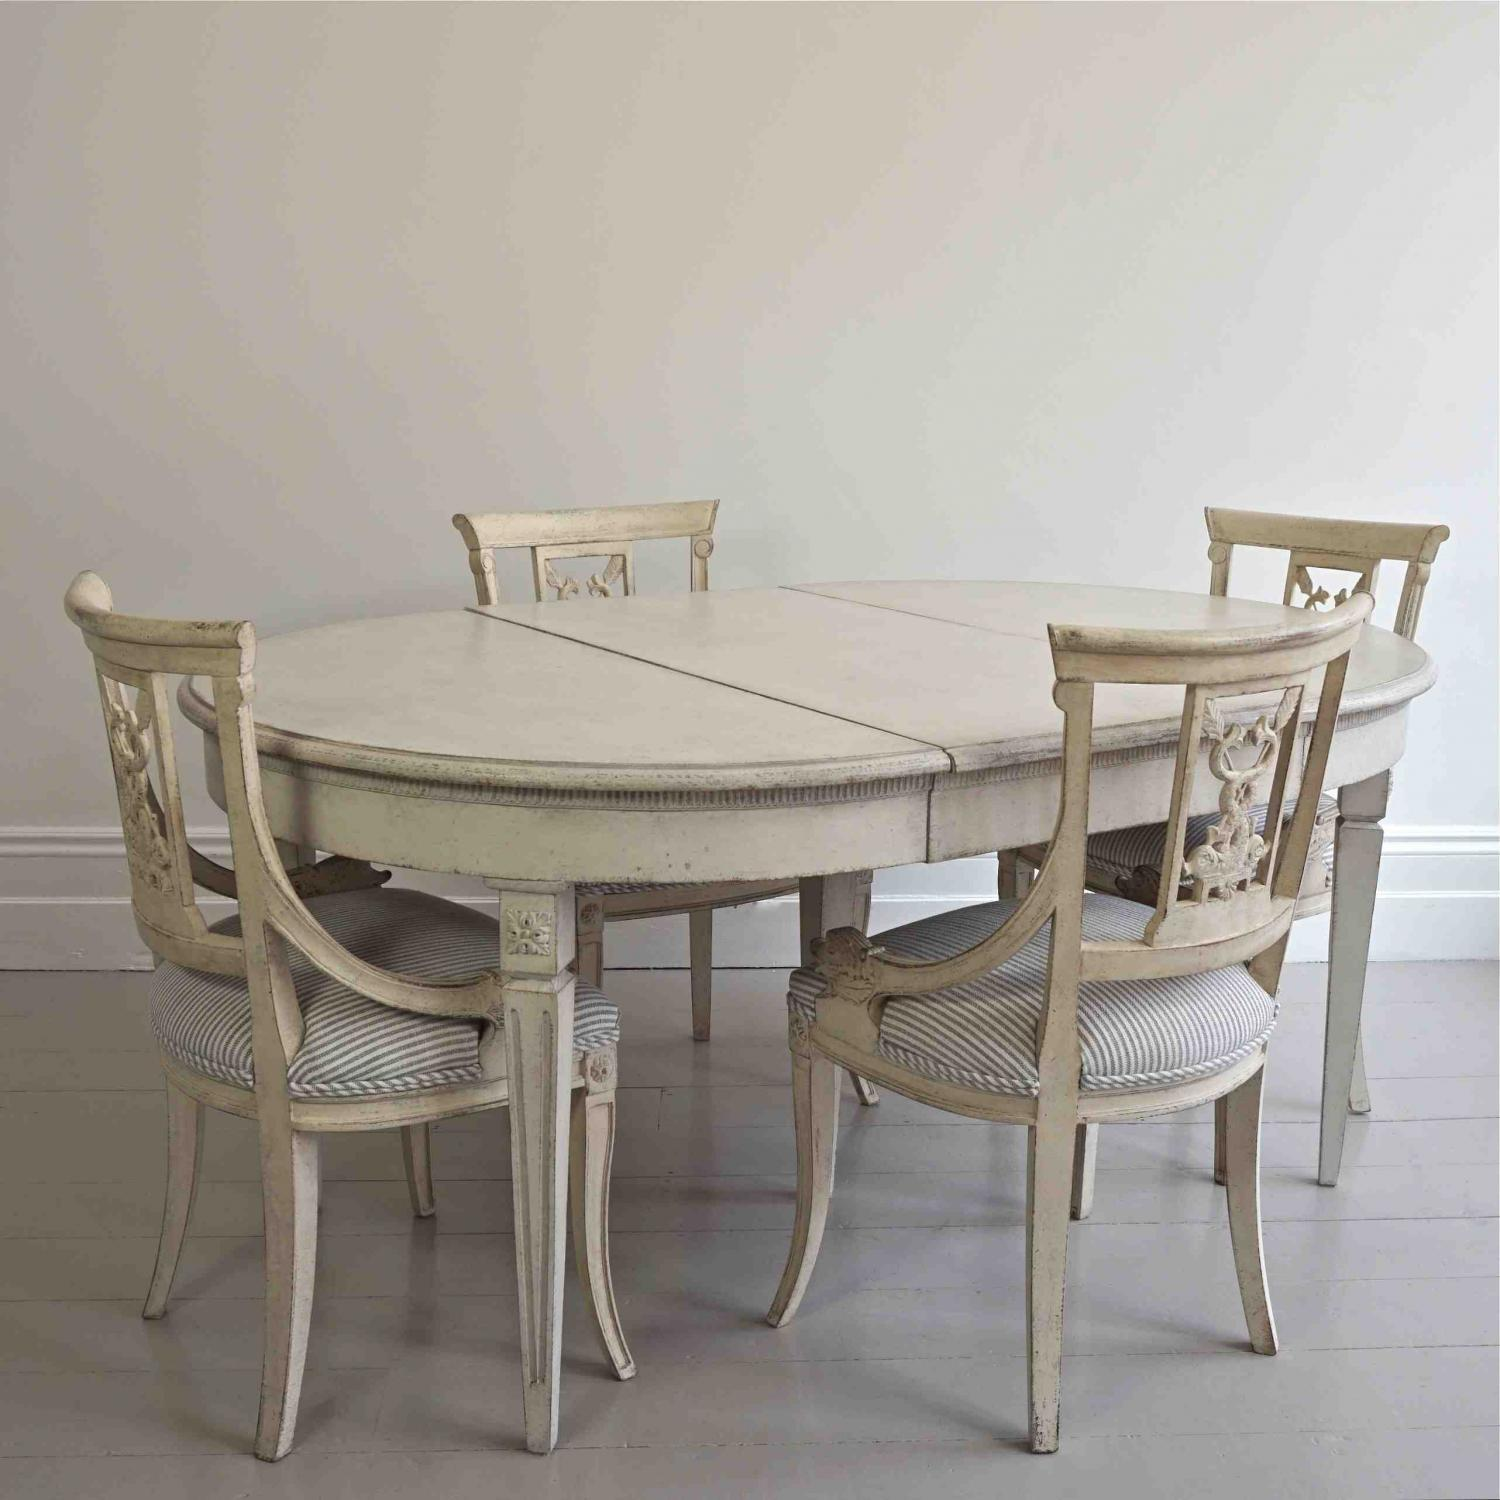 SWEDISH GUSTAVIAN STYLE DINING TABLE